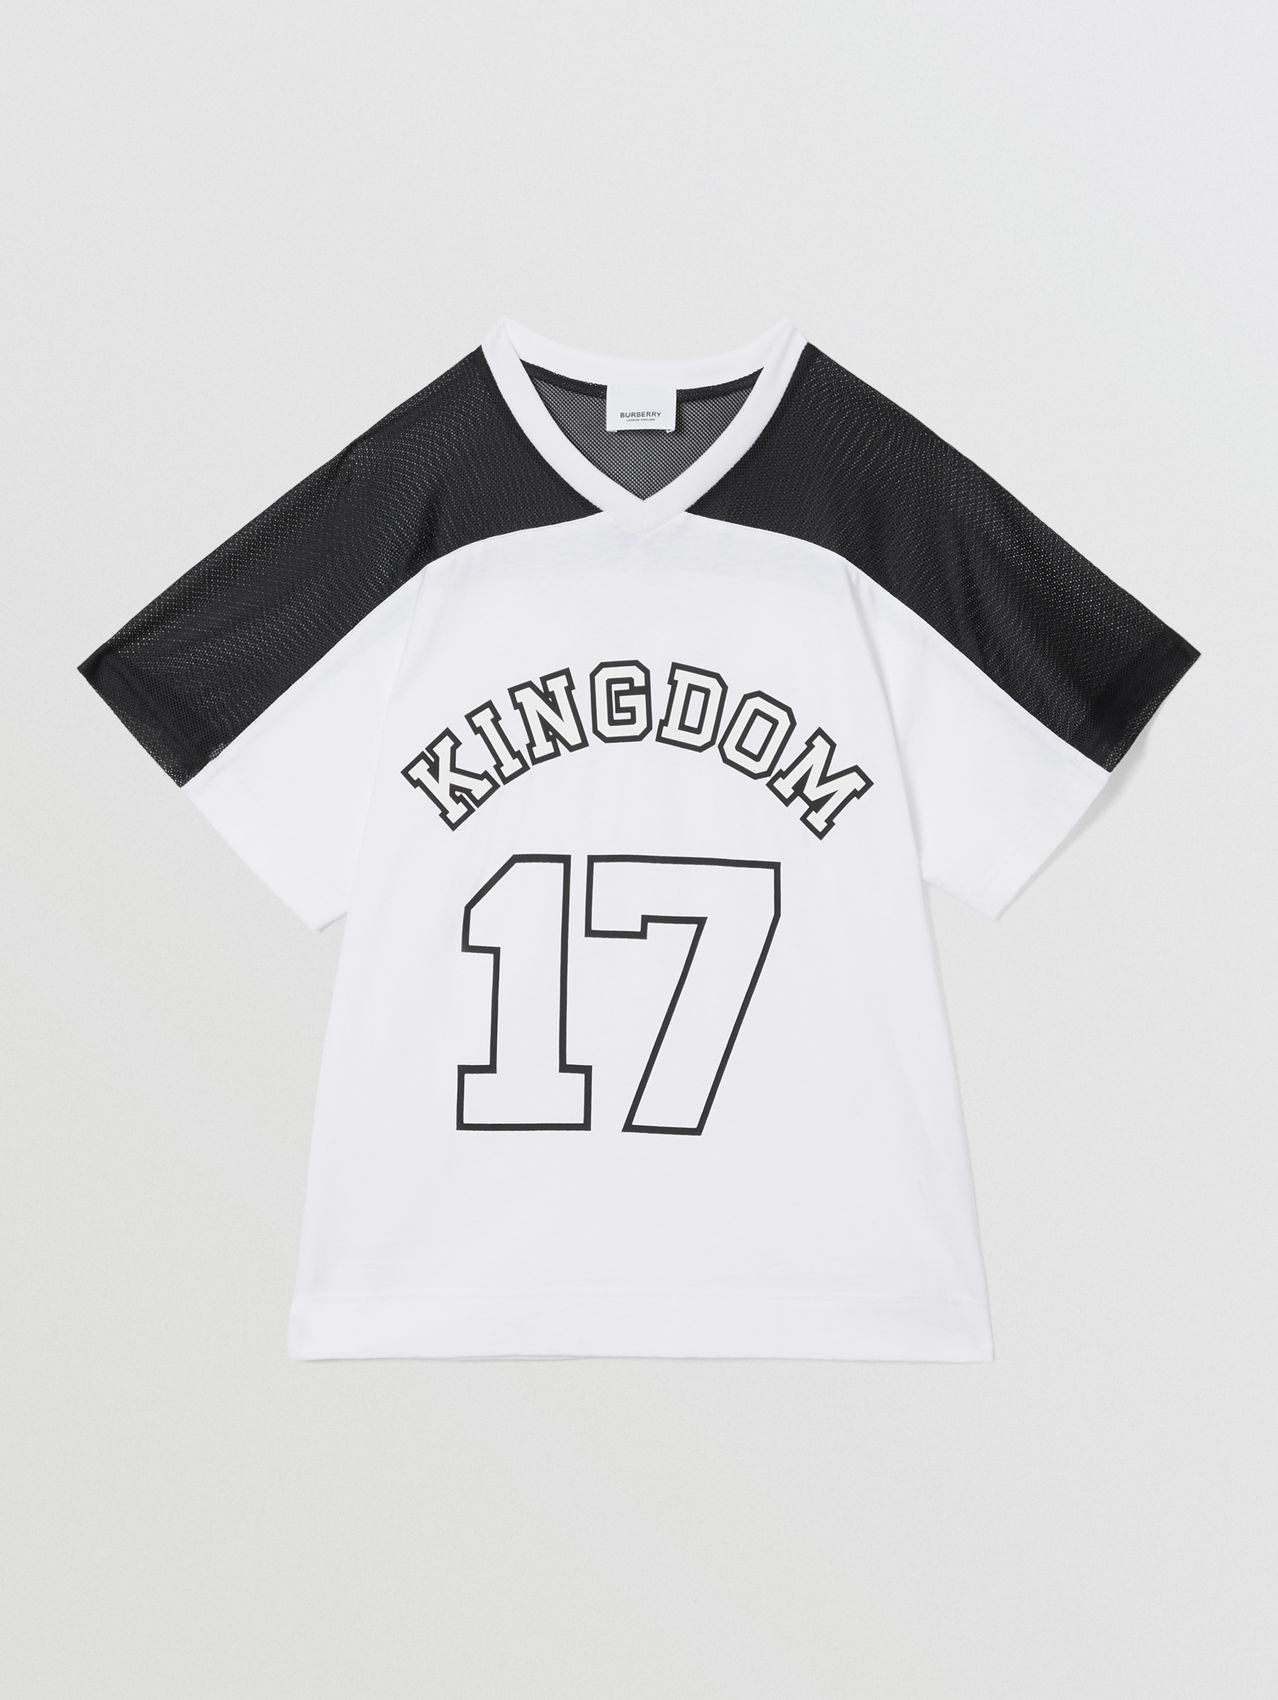 Mesh Panel Kingdom Print Cotton T-shirt (Black)